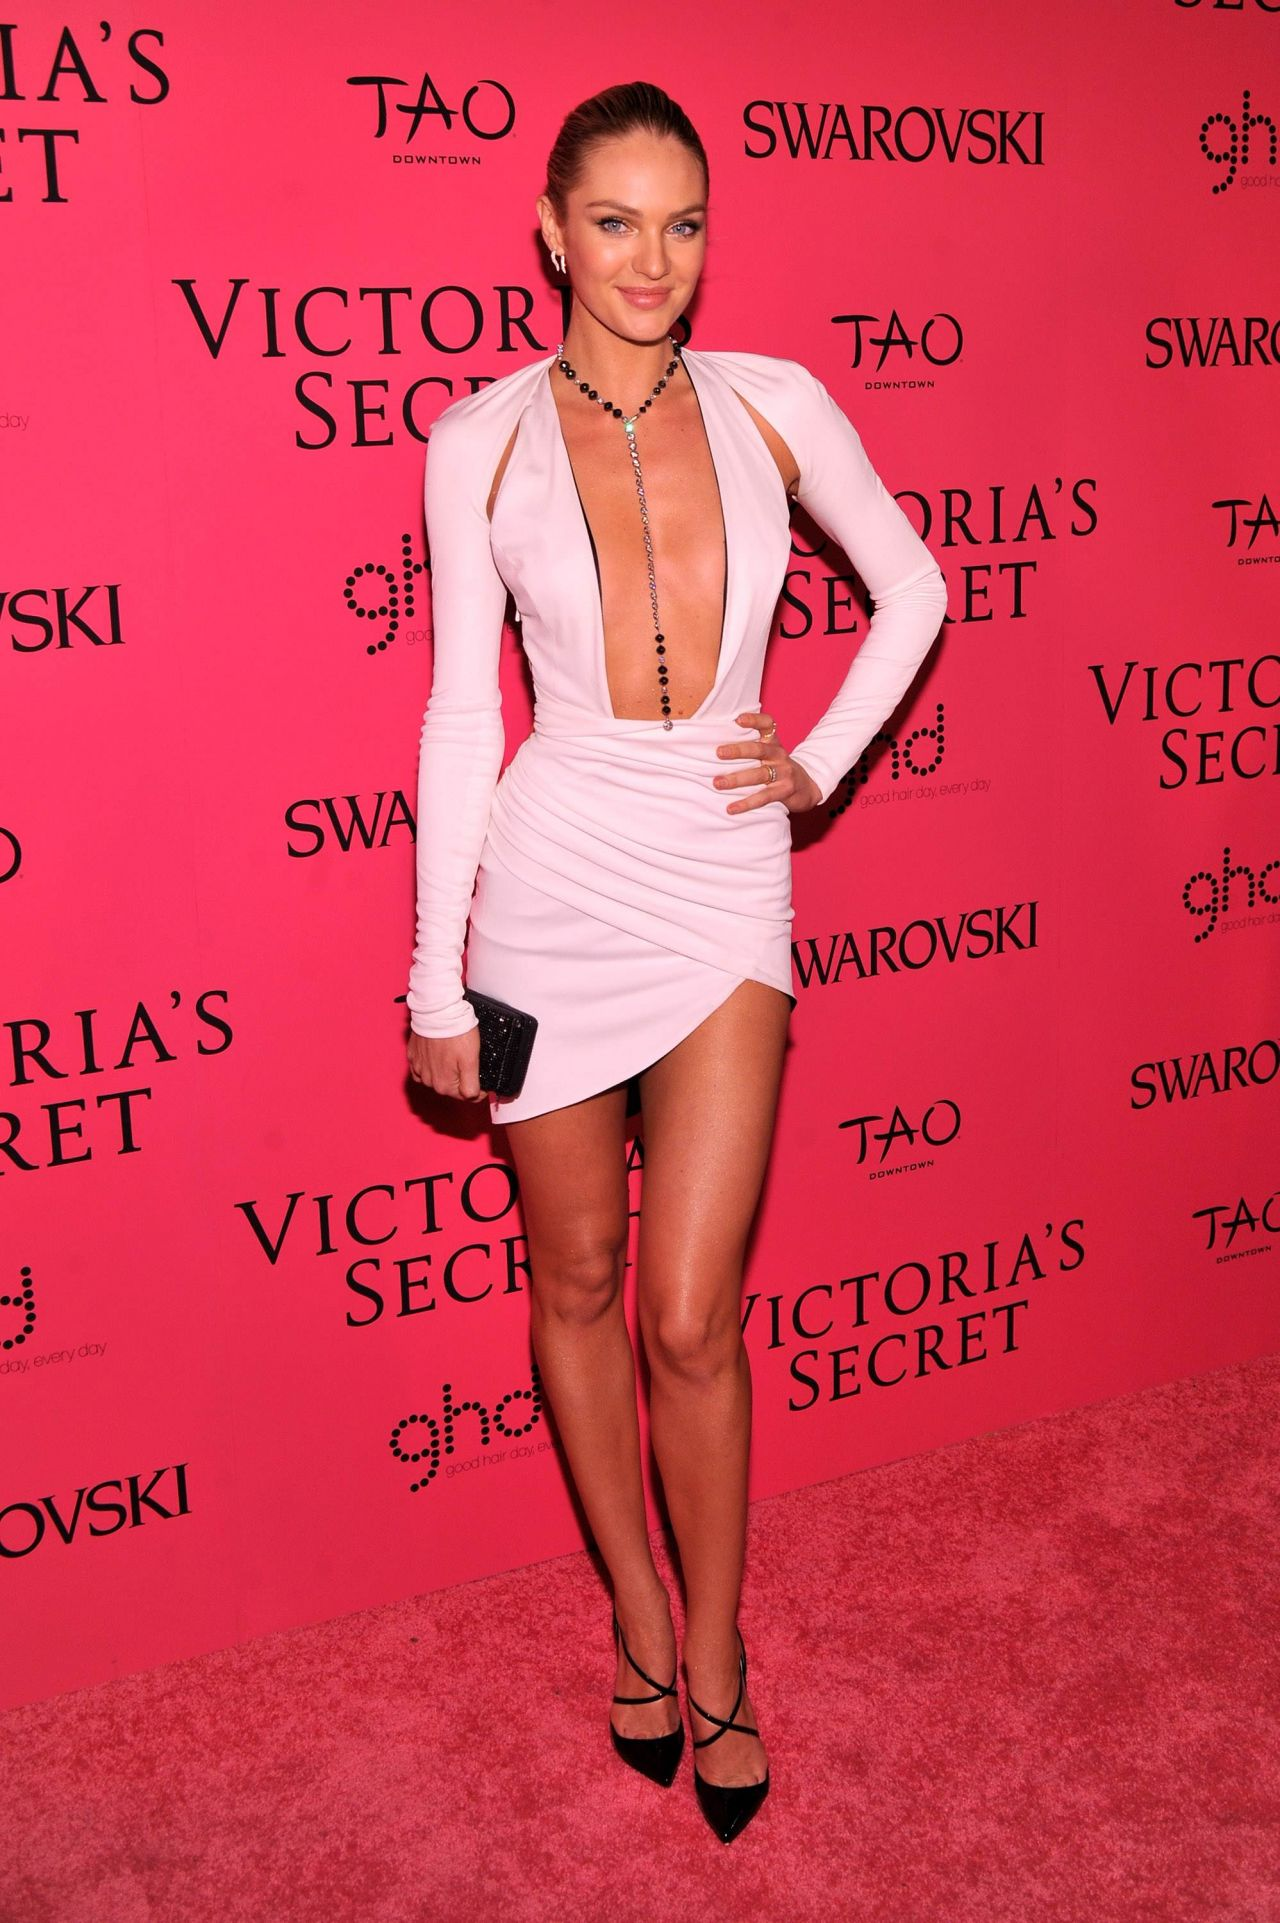 Candice Swanepoel Hot Red Carpet Photos